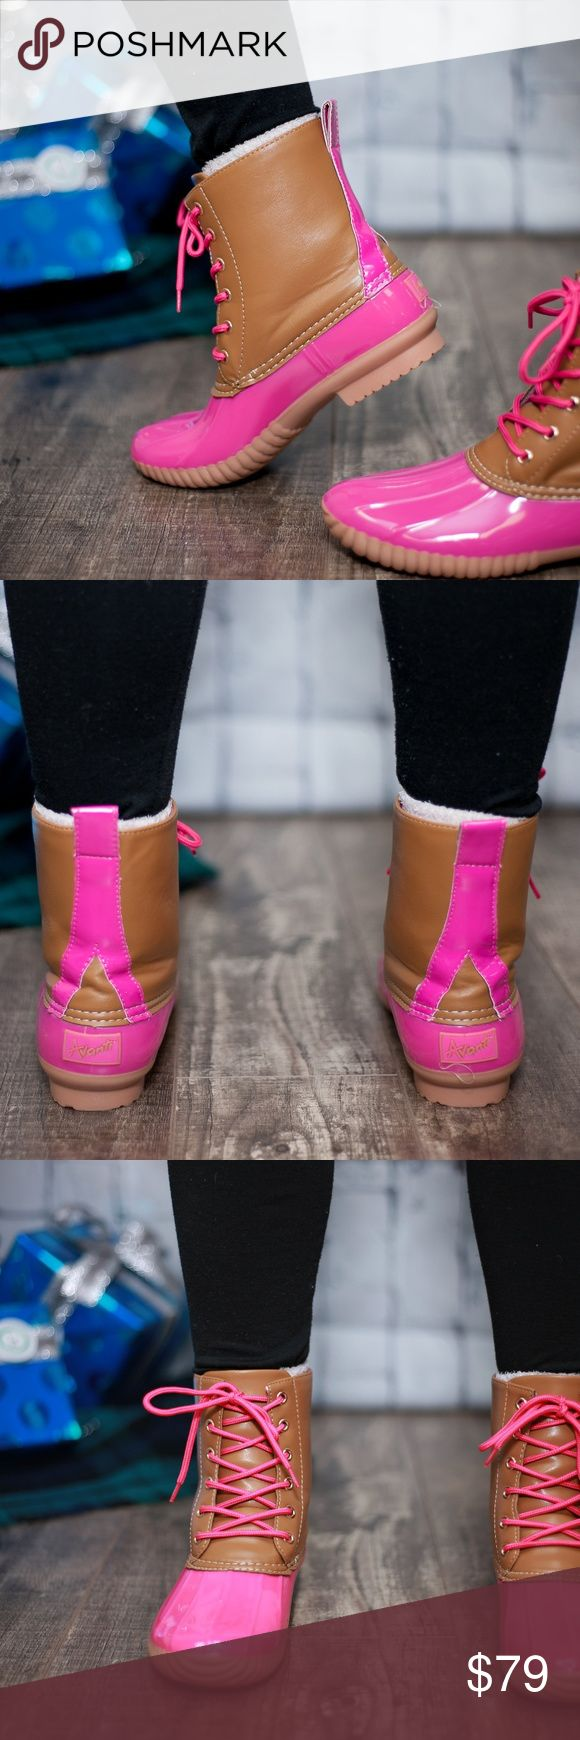 Hot Pink Duck Boots This listing is for pink. These are selling like crazy!! $79 each or $130 for 2 pairs. Other colors available  Select lining in each boot to keep you comfy. Stitched synthetic rubber sole for durability and grip  Price FIRM unless bundled. Kyoot Klothing Shoes Winter & Rain Boots